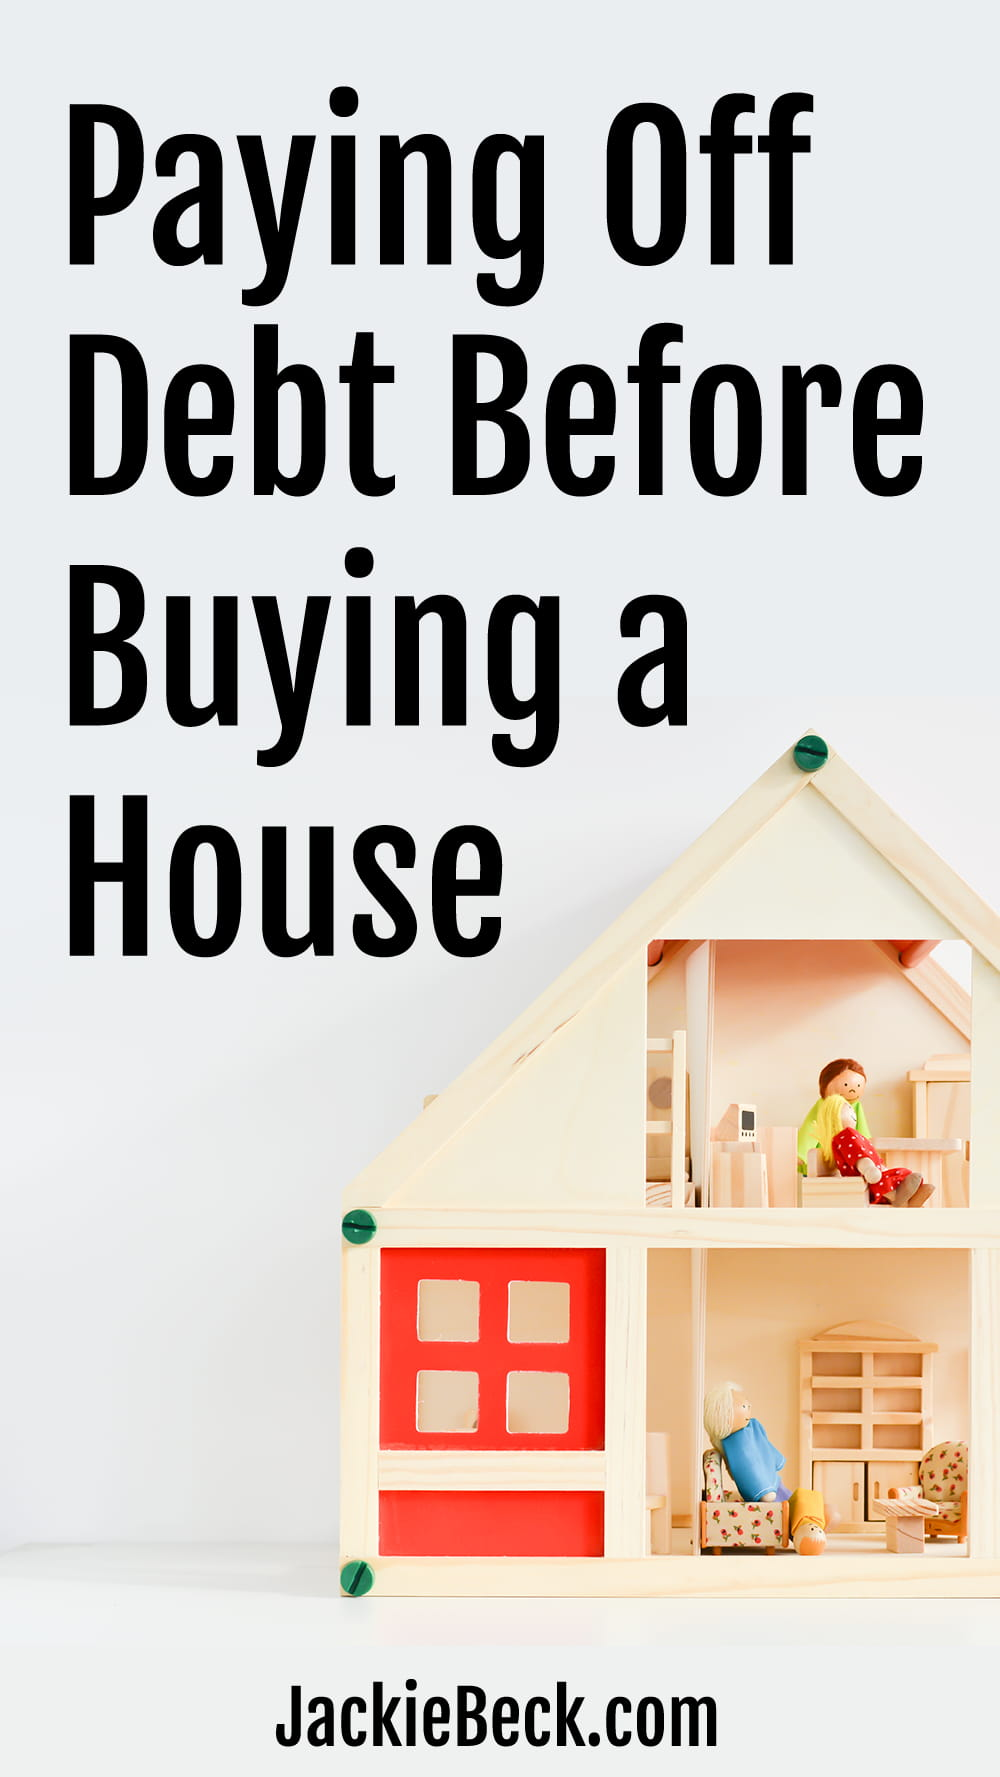 Paying off debt before buying a house